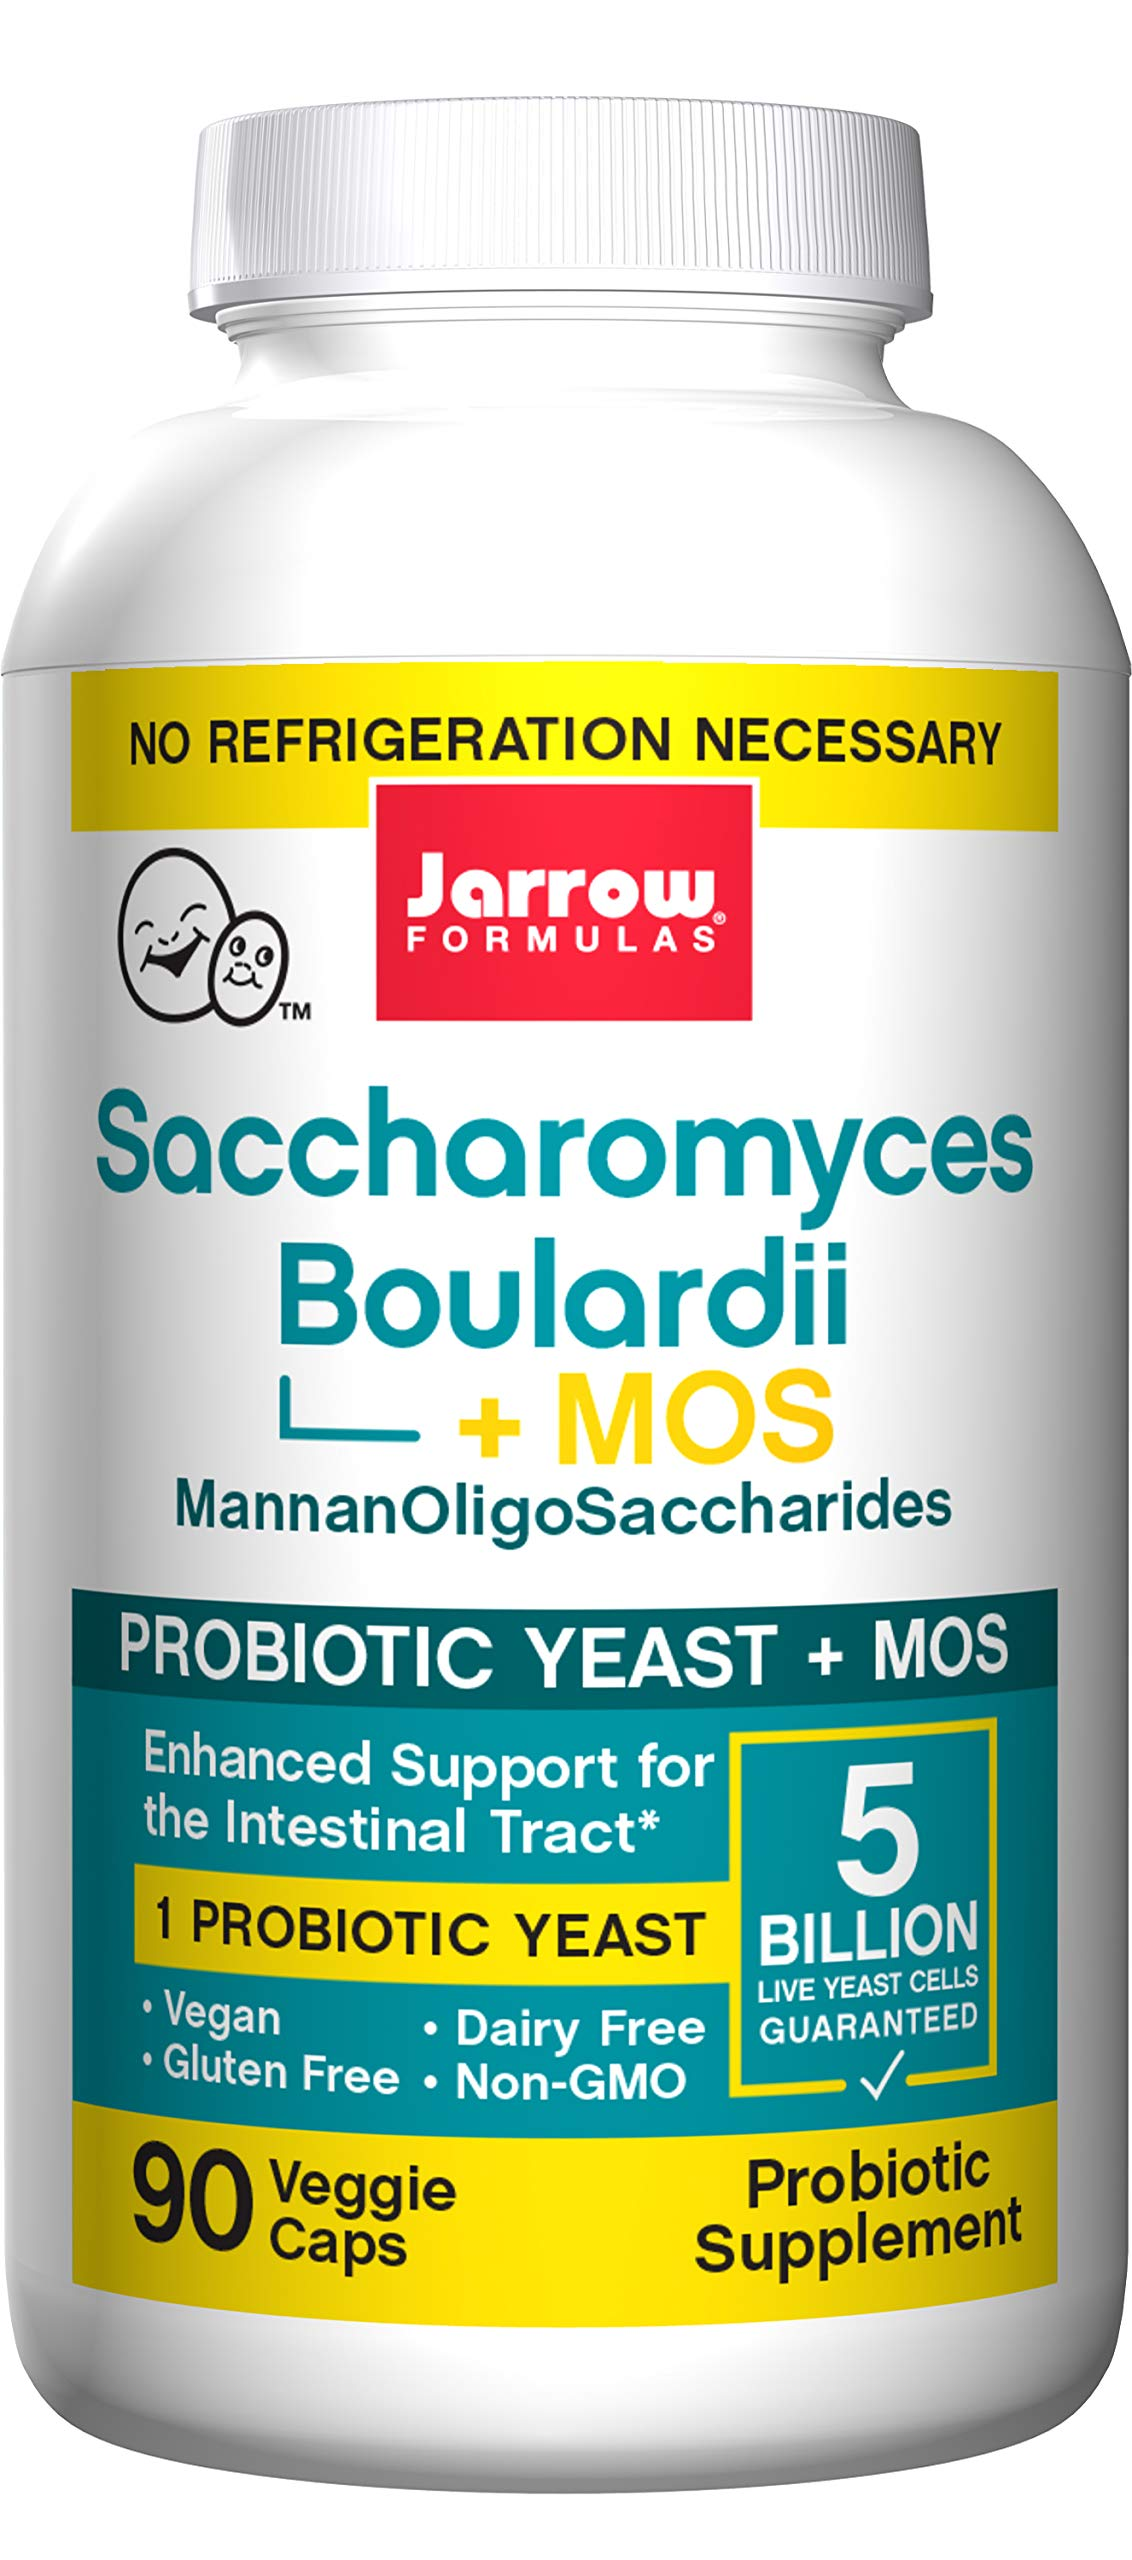 Jarrow Formulas Sacharomyces Boulardii & MOS, Provides Enhanced Support to The Intestinal Tract, 90 Caps by Jarrow Formulas